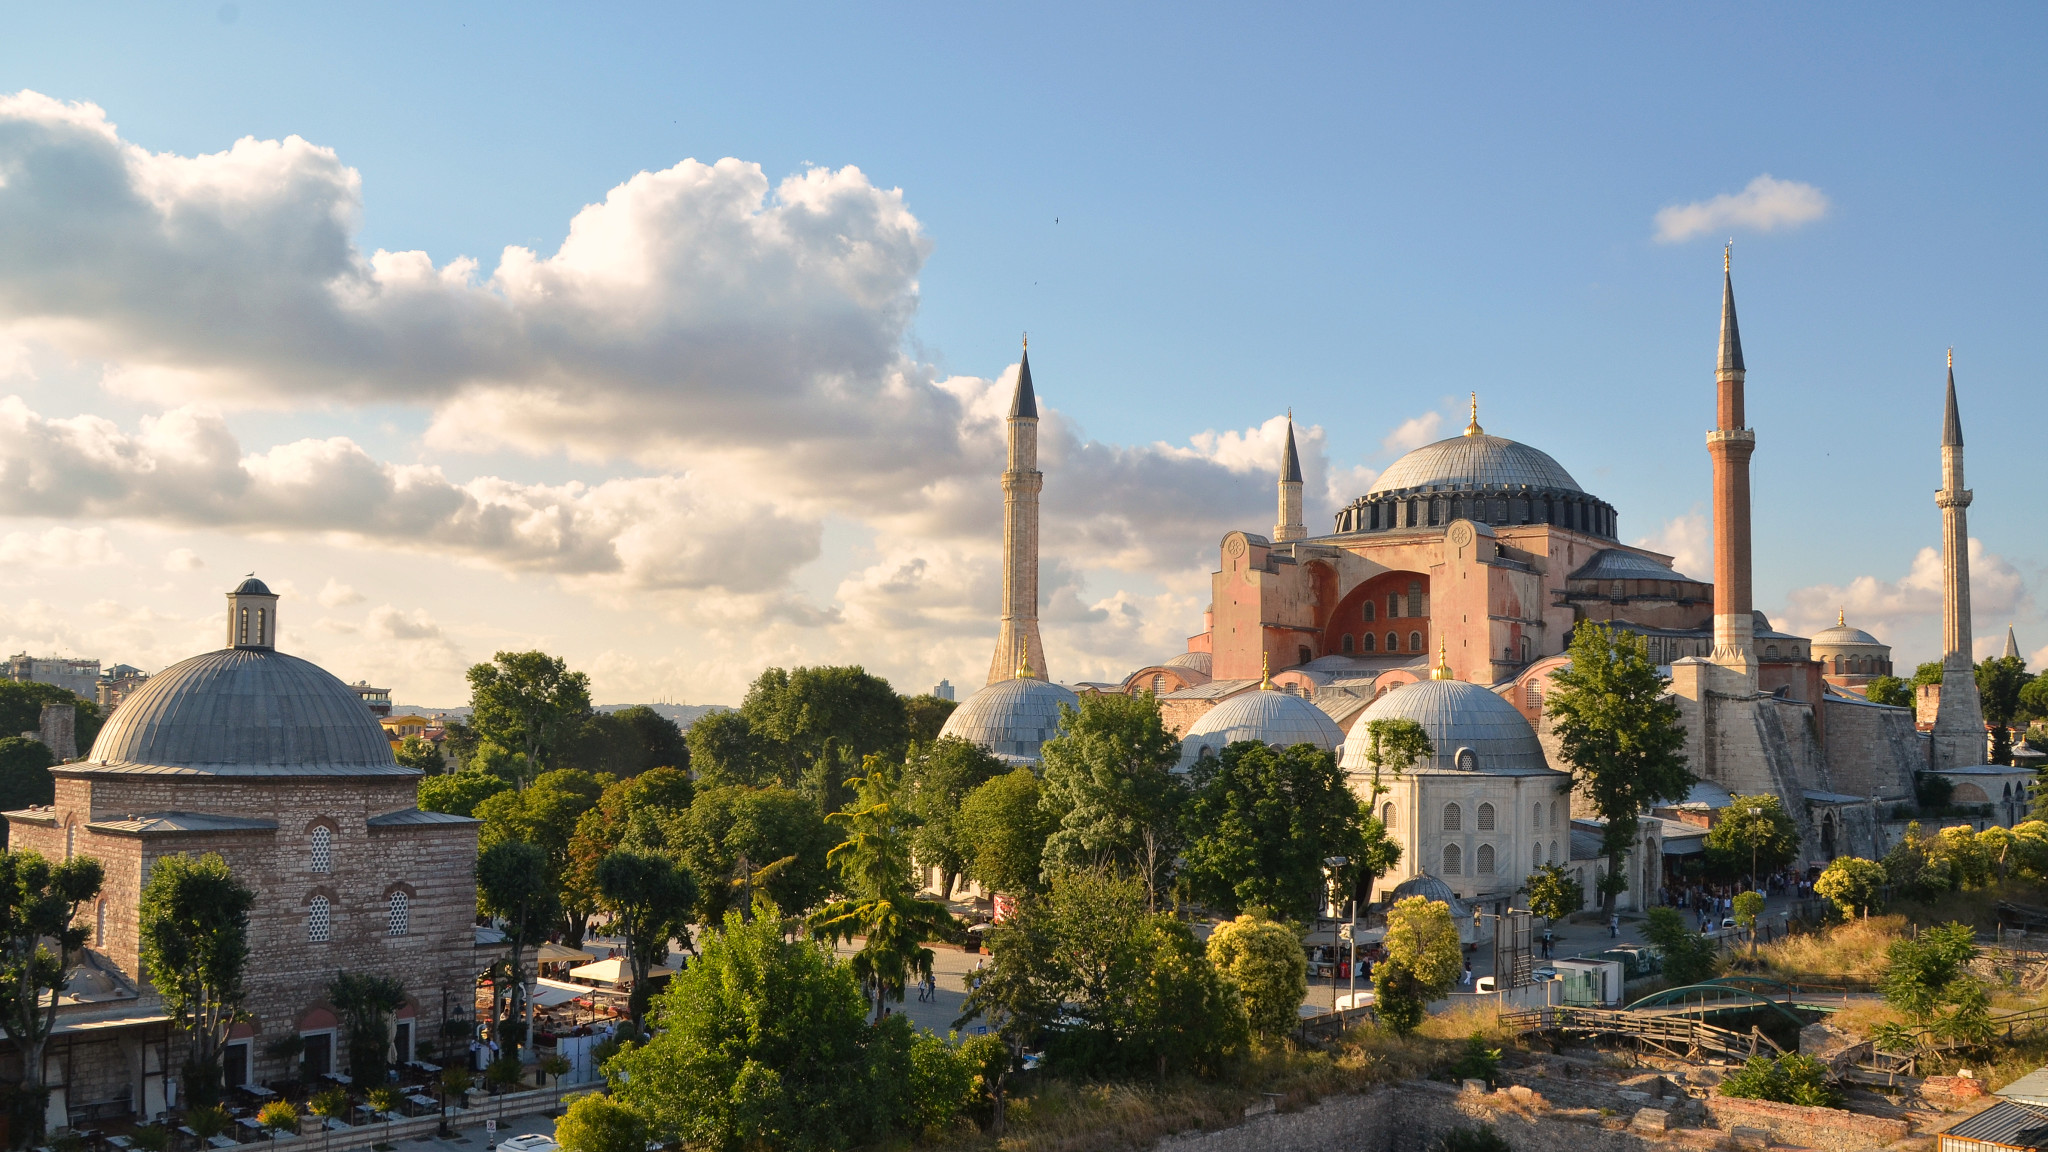 Hagia Sophia and Hamam in Istanbul, Turkey